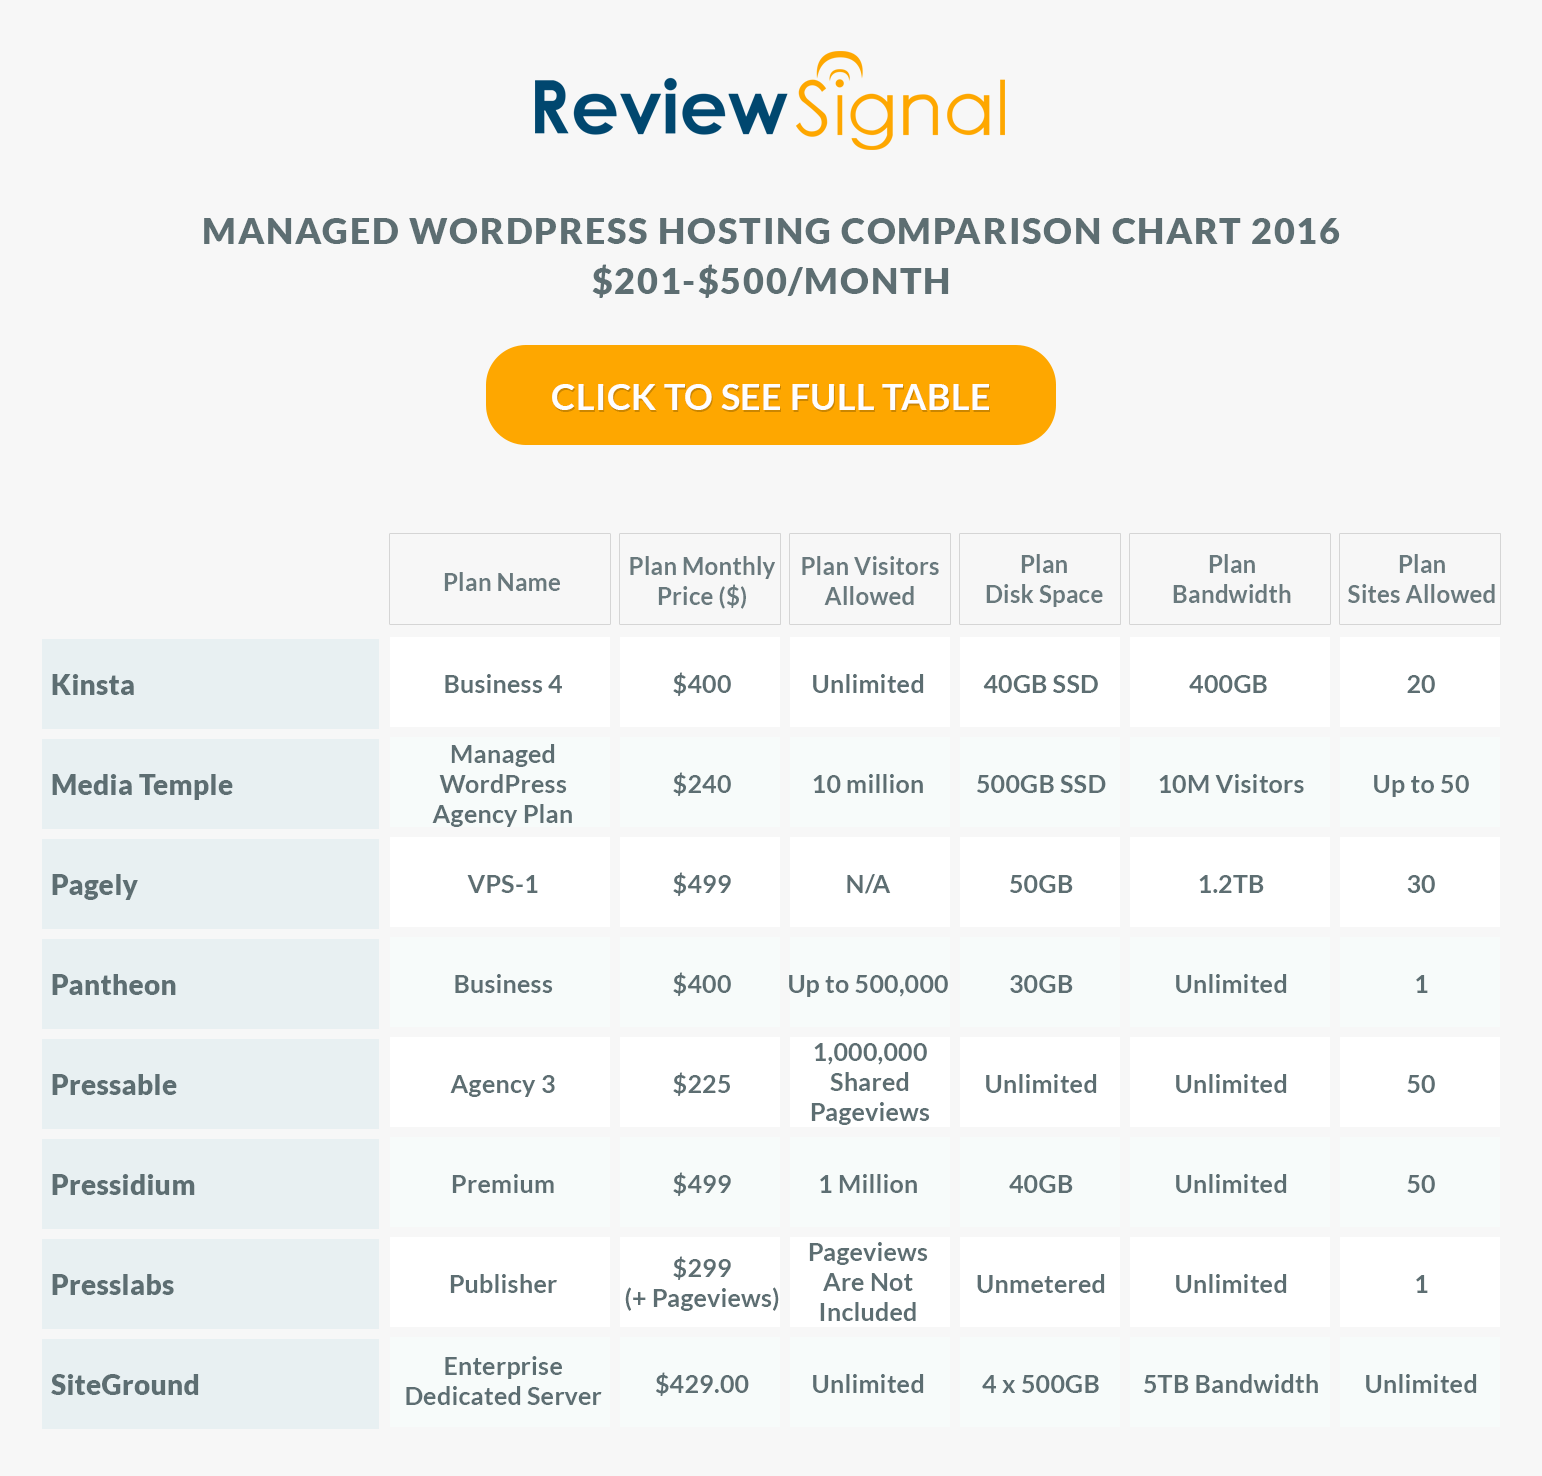 review_signal_table_500